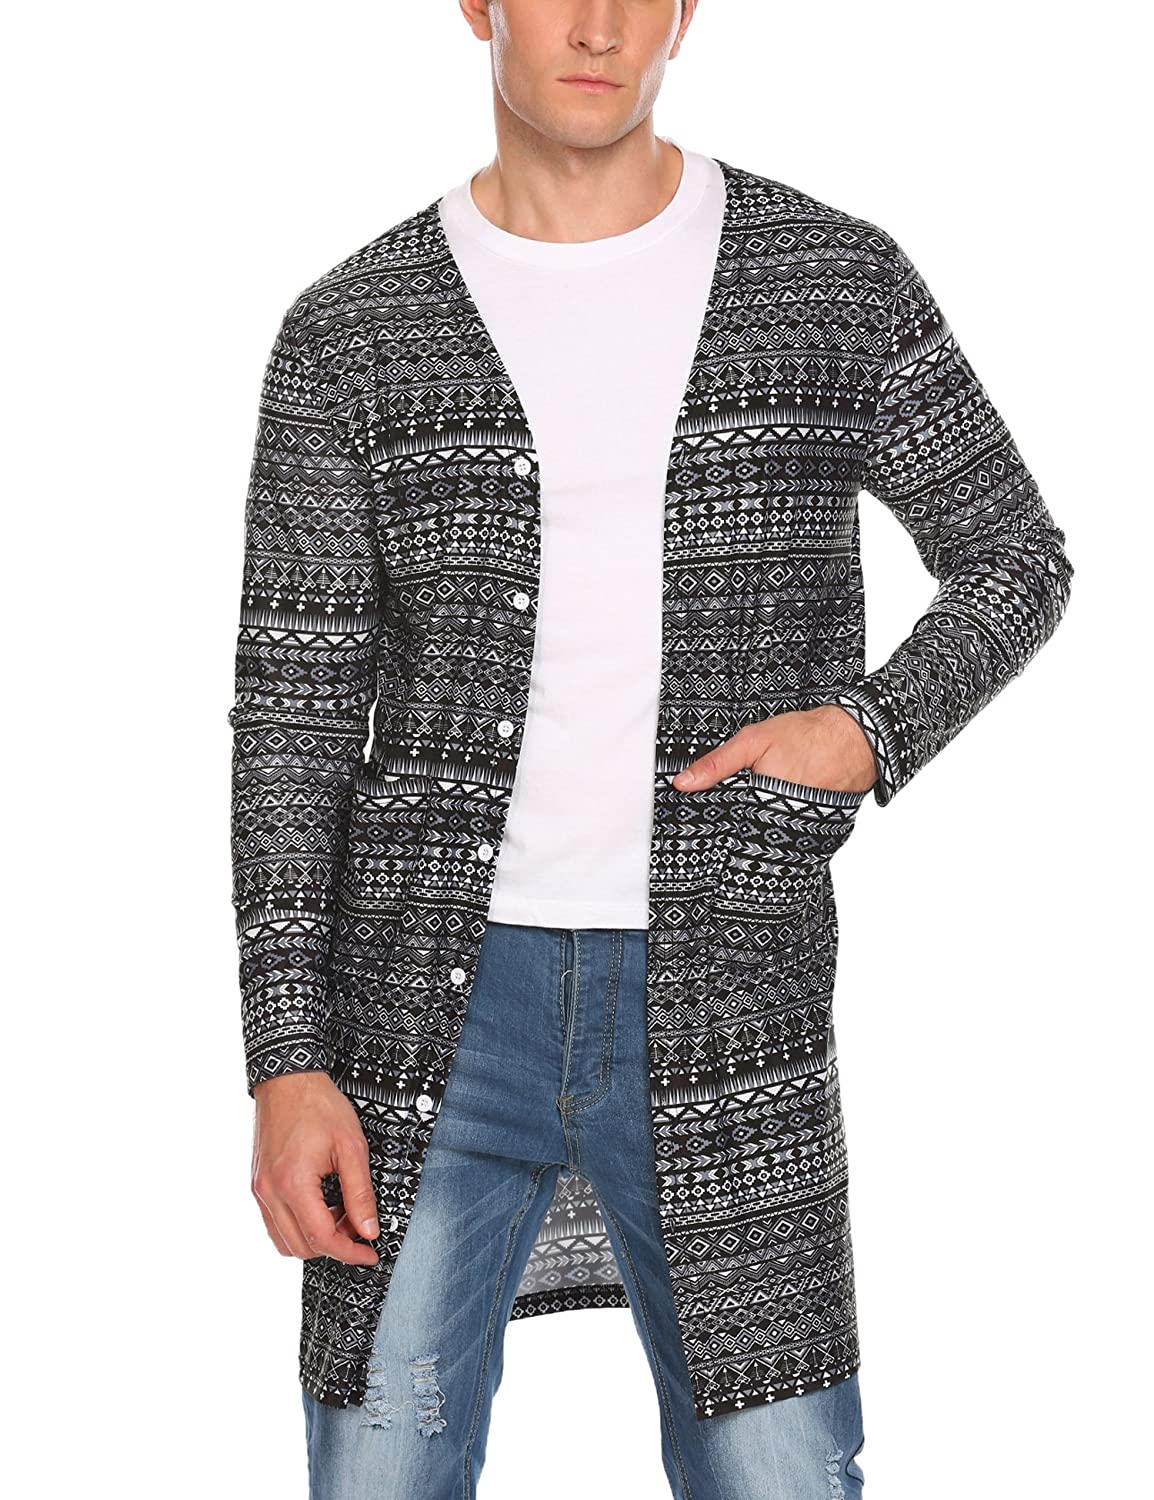 COOFANDY Men's Ruffle Shawl Collar Cardigan Lightweight Mesh See Through Long Length Drape Cape 11210512